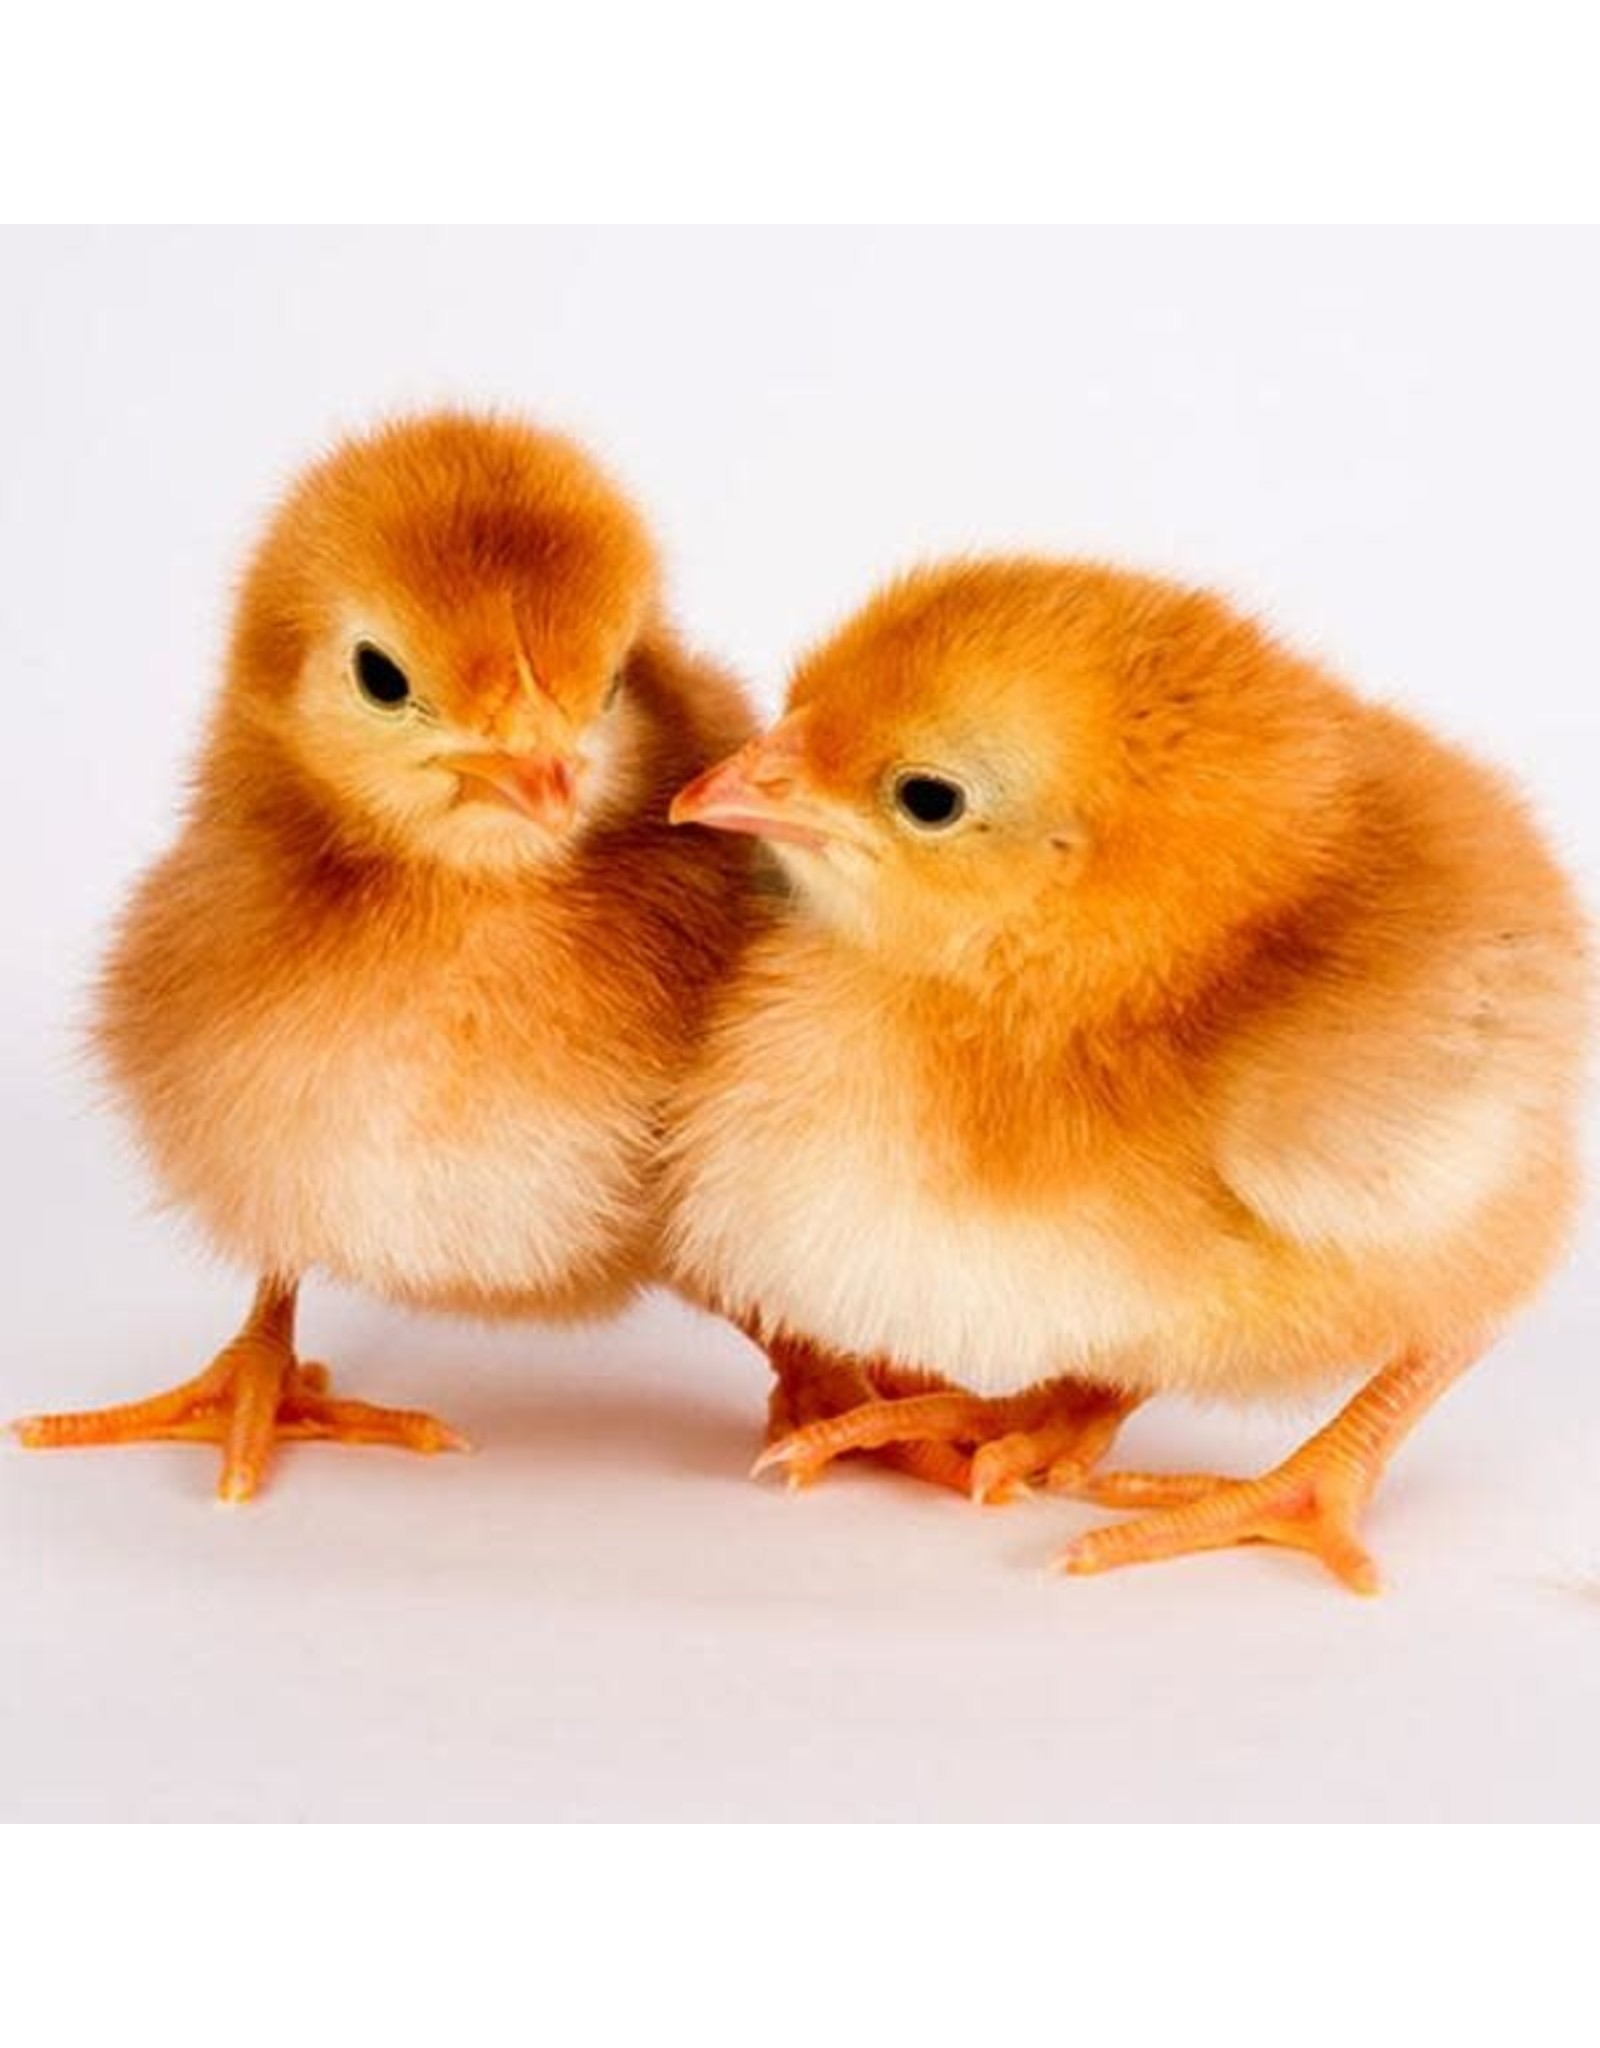 Ideal Poultry Rhode Island Red